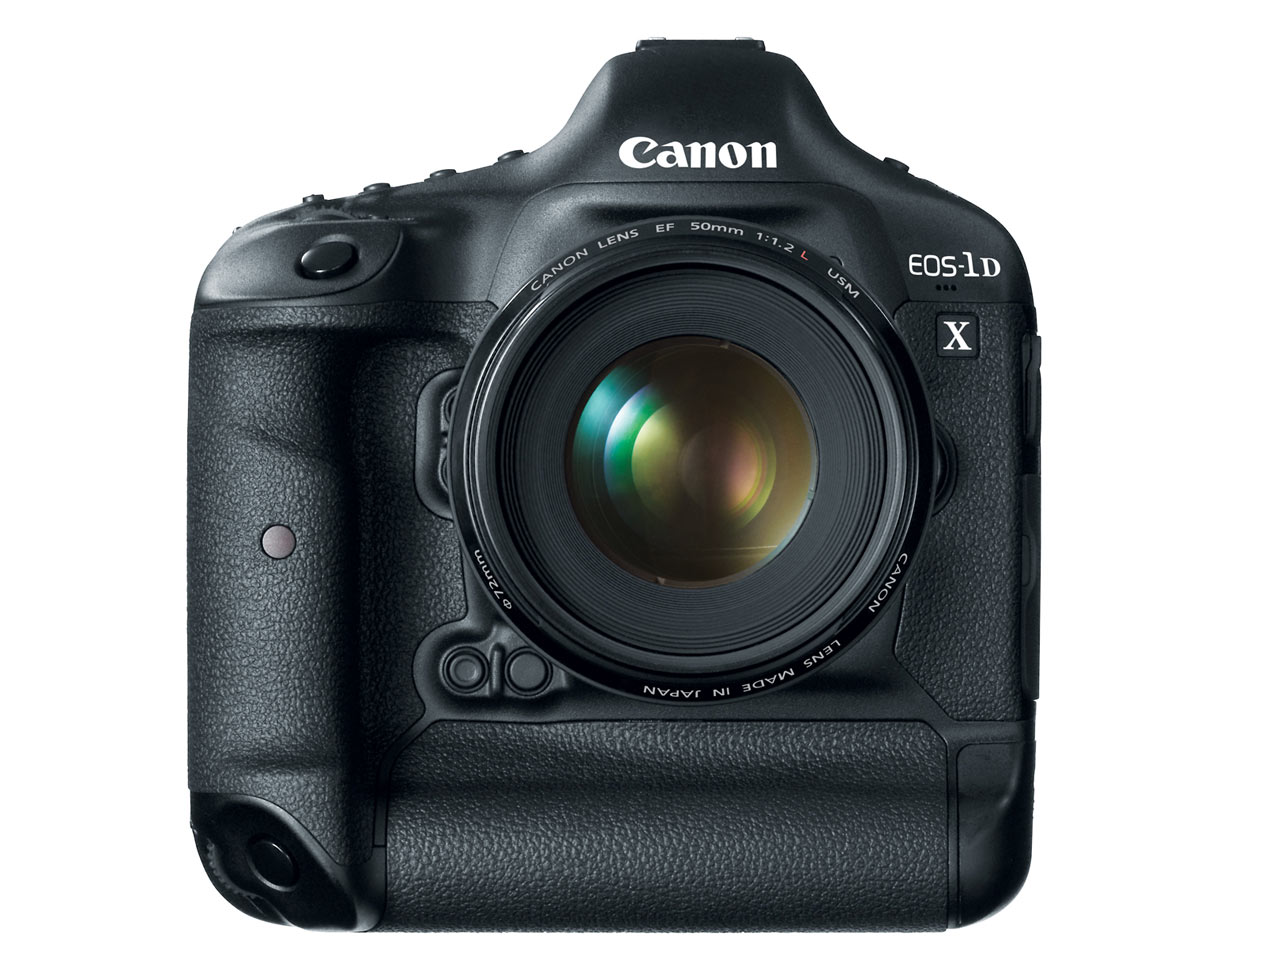 Canon EOS-1D X review by Professional Wildlife Photographer Andy Rouse